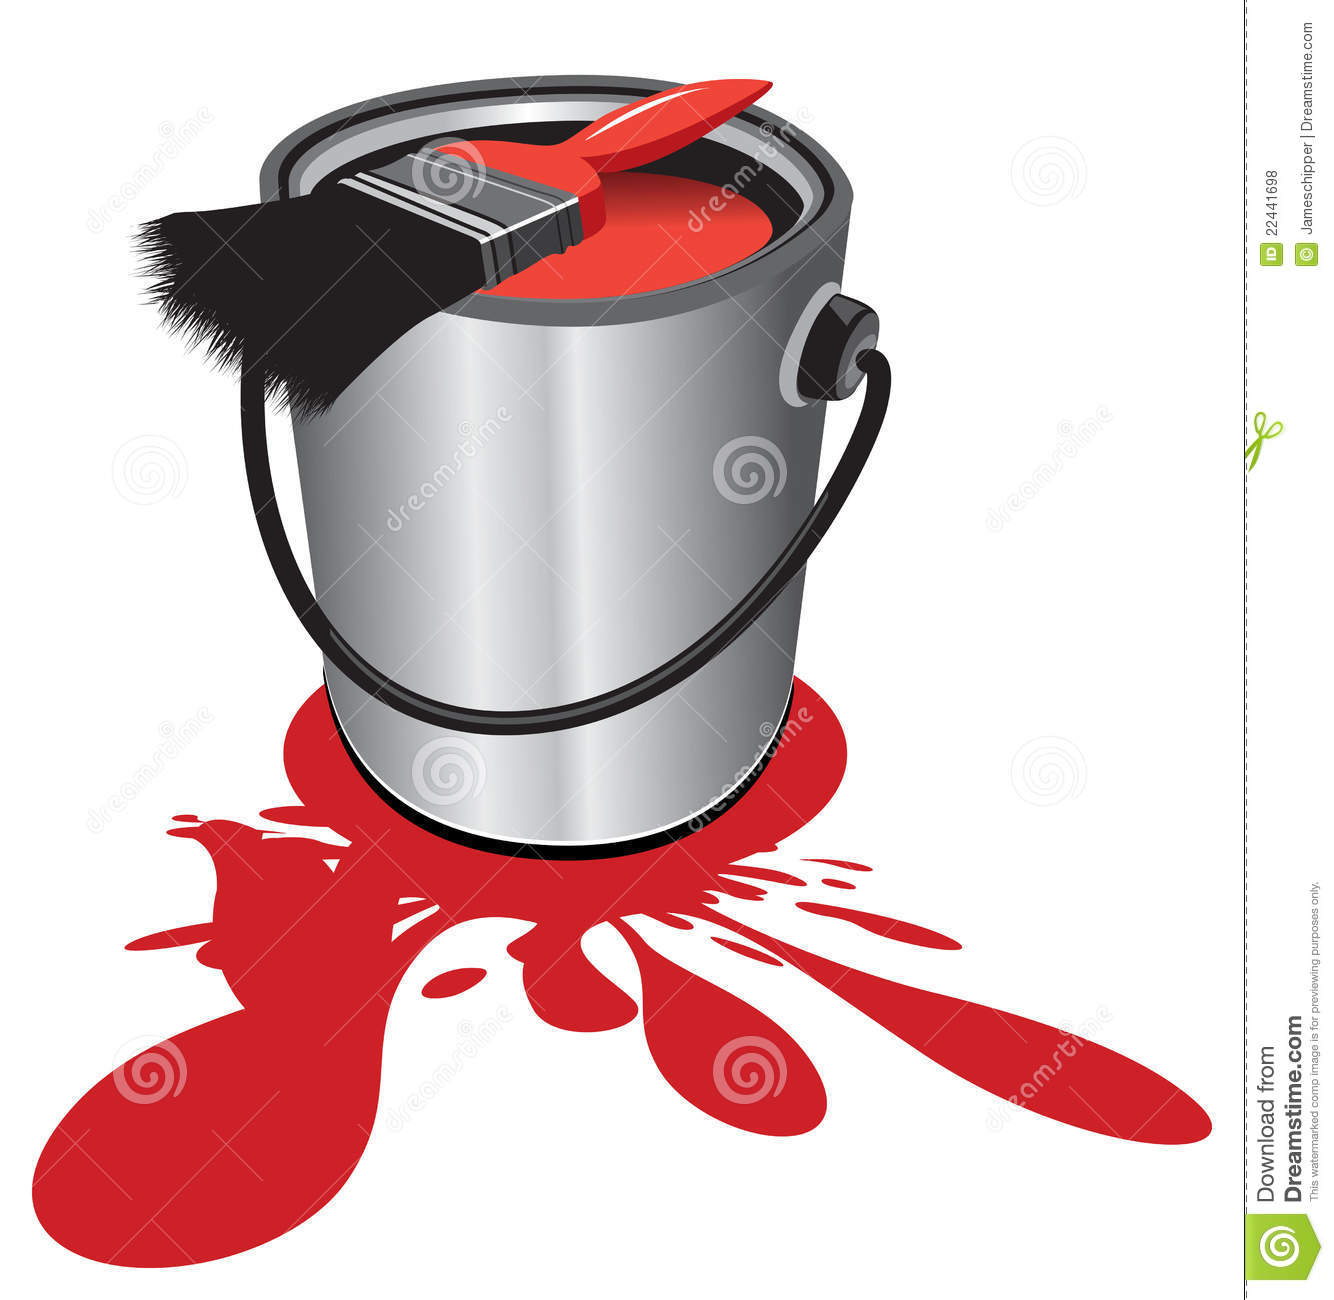 Paint Pot Royalty Free Stock Photos - Image: 22441698